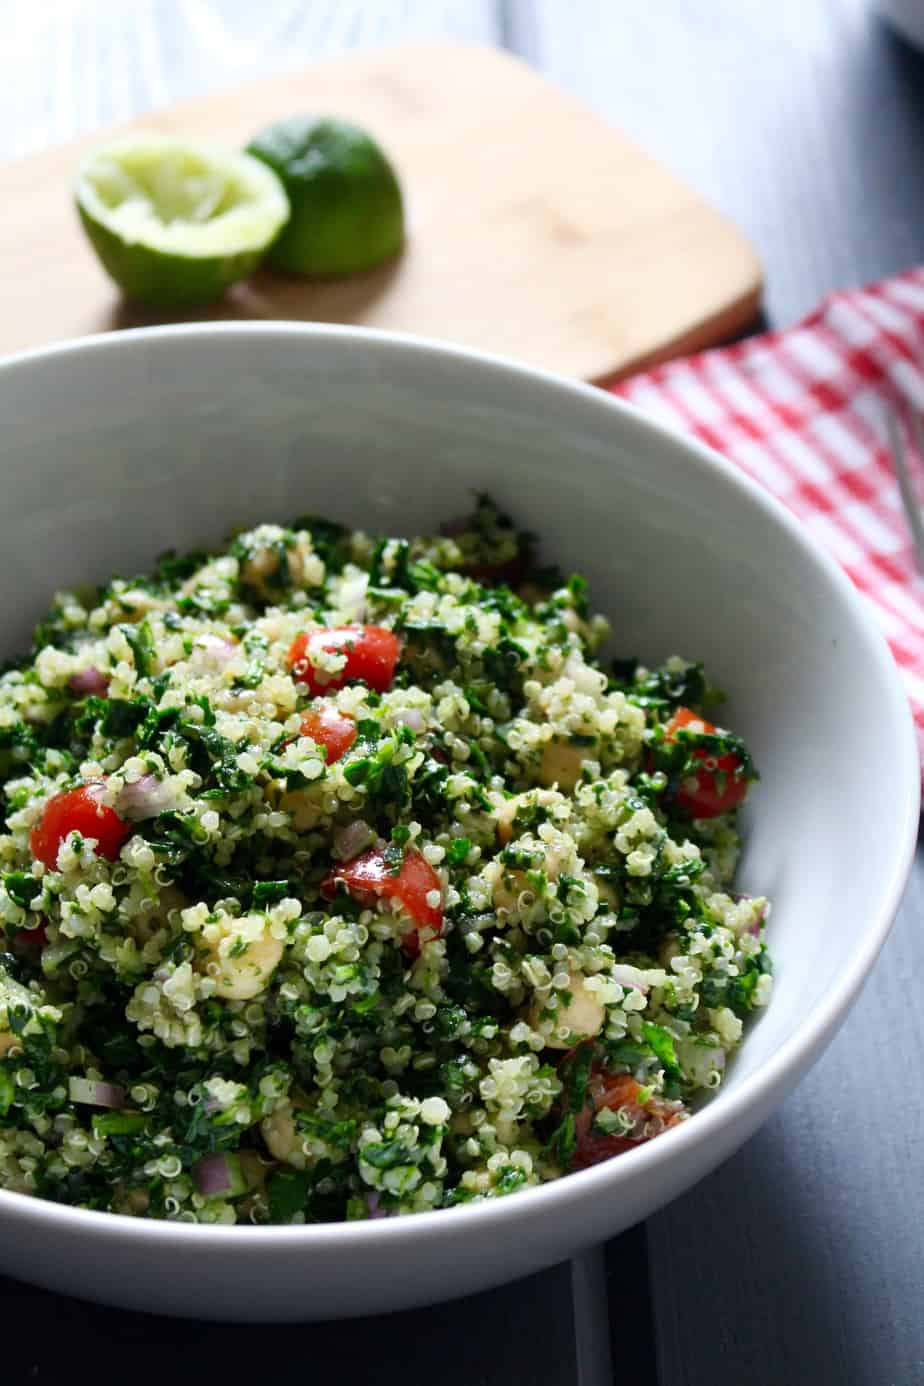 Vegan Cilantro Lime Quinoa Spinach Salad with Chickpeas   Frugal Nutrition